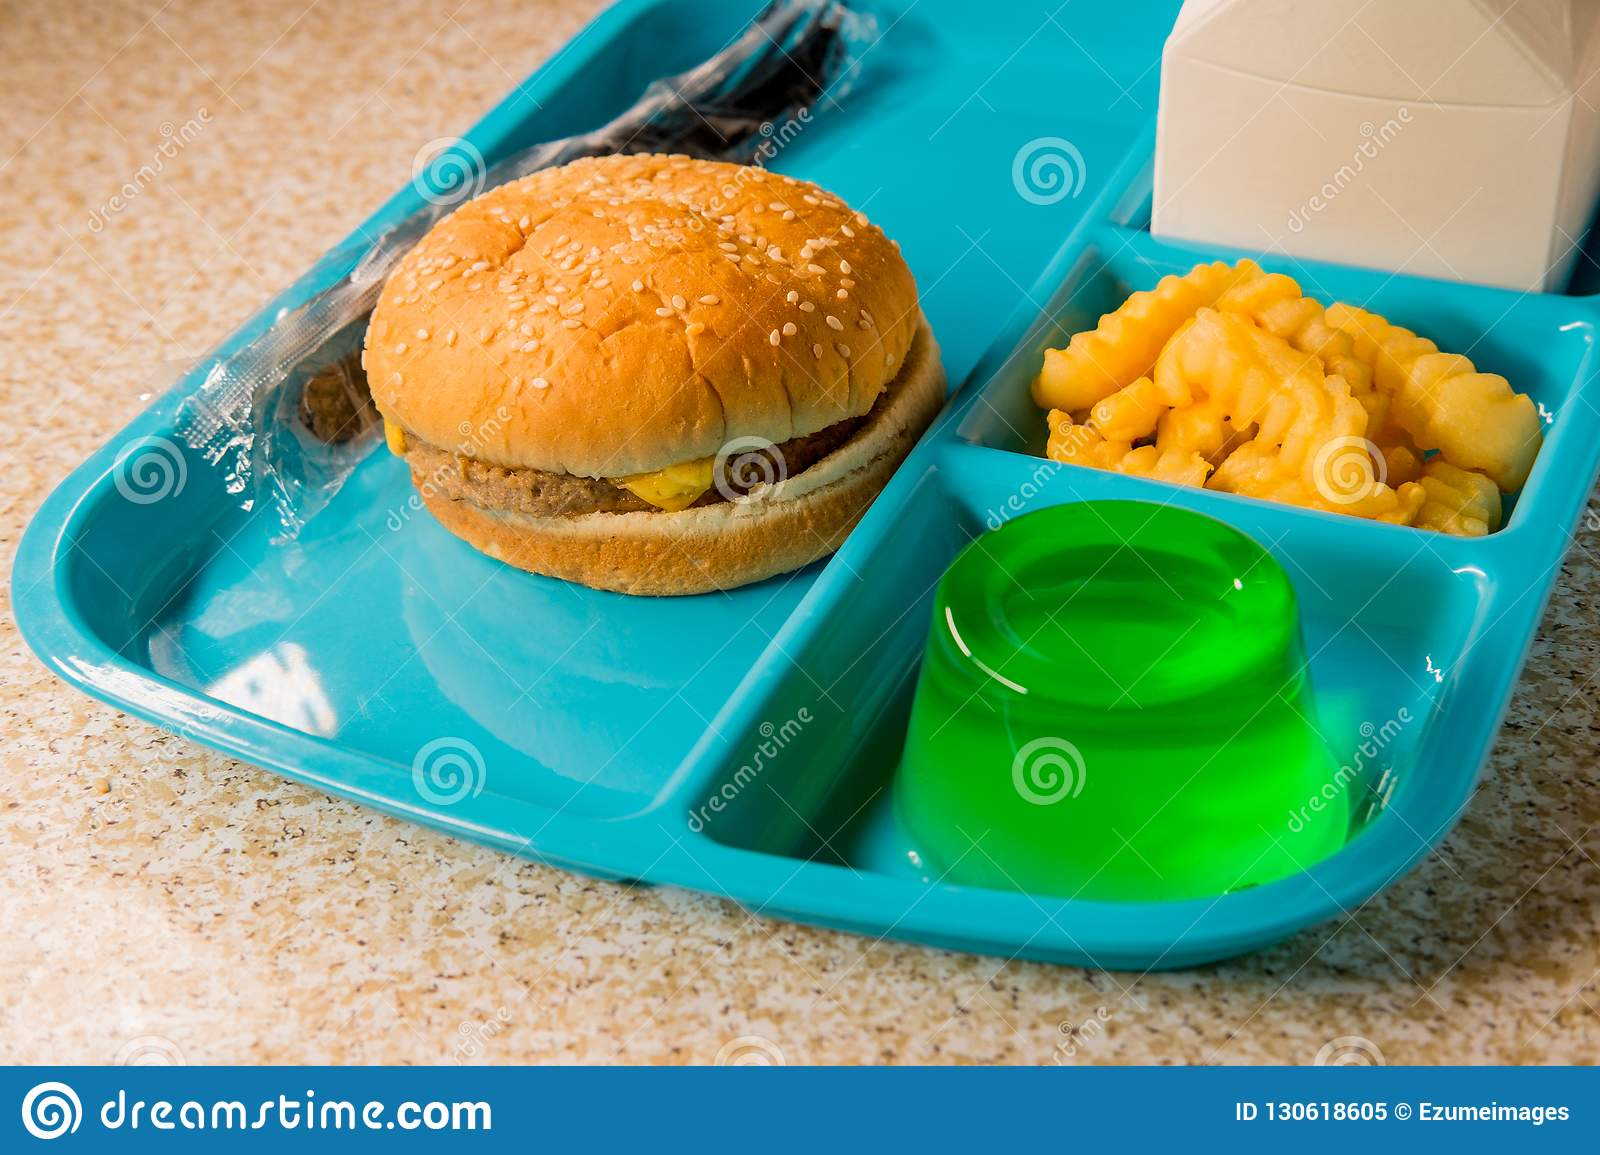 School Lunch Tray Cheeseburger Stock Image - Image of back